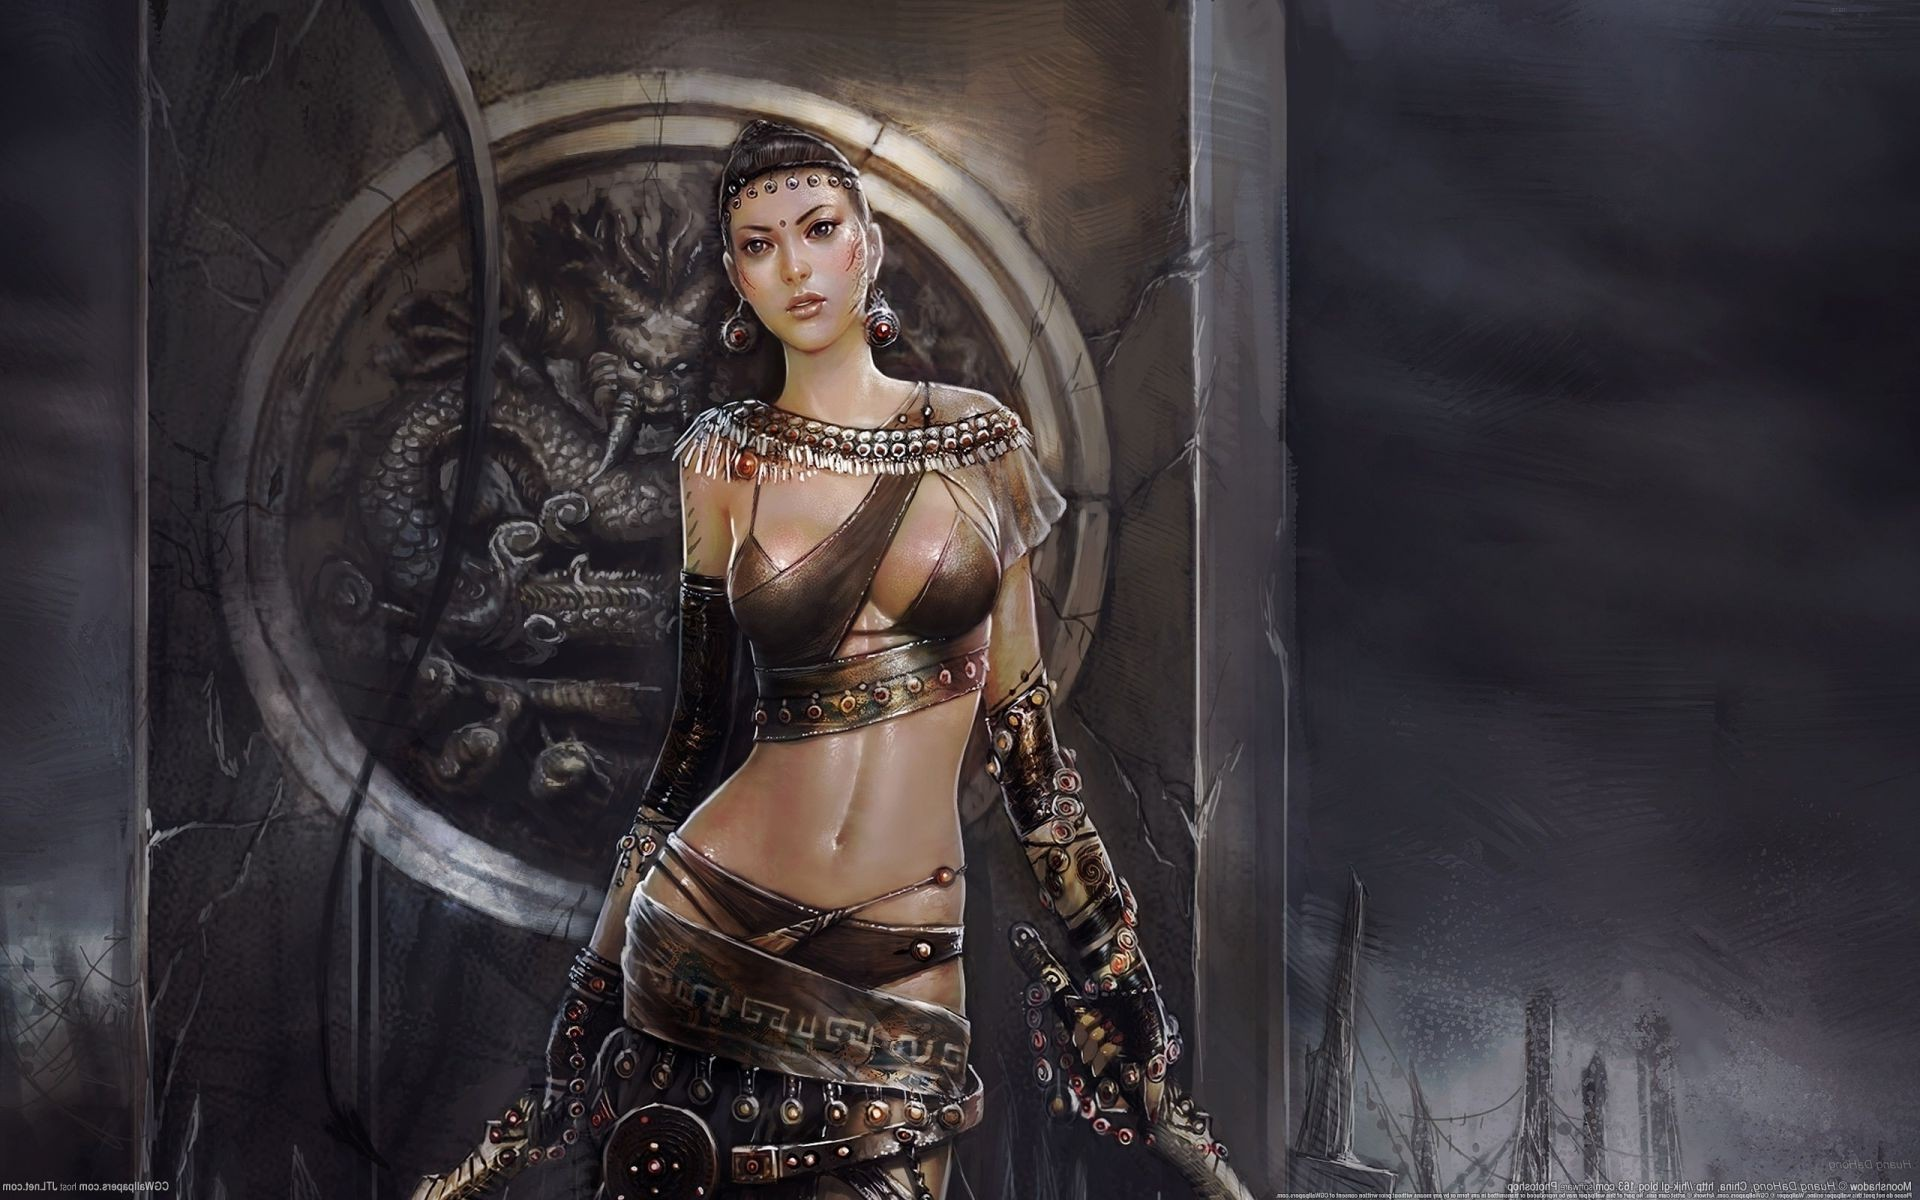 the monolith swords girl warrior jewelry huang dahong. android